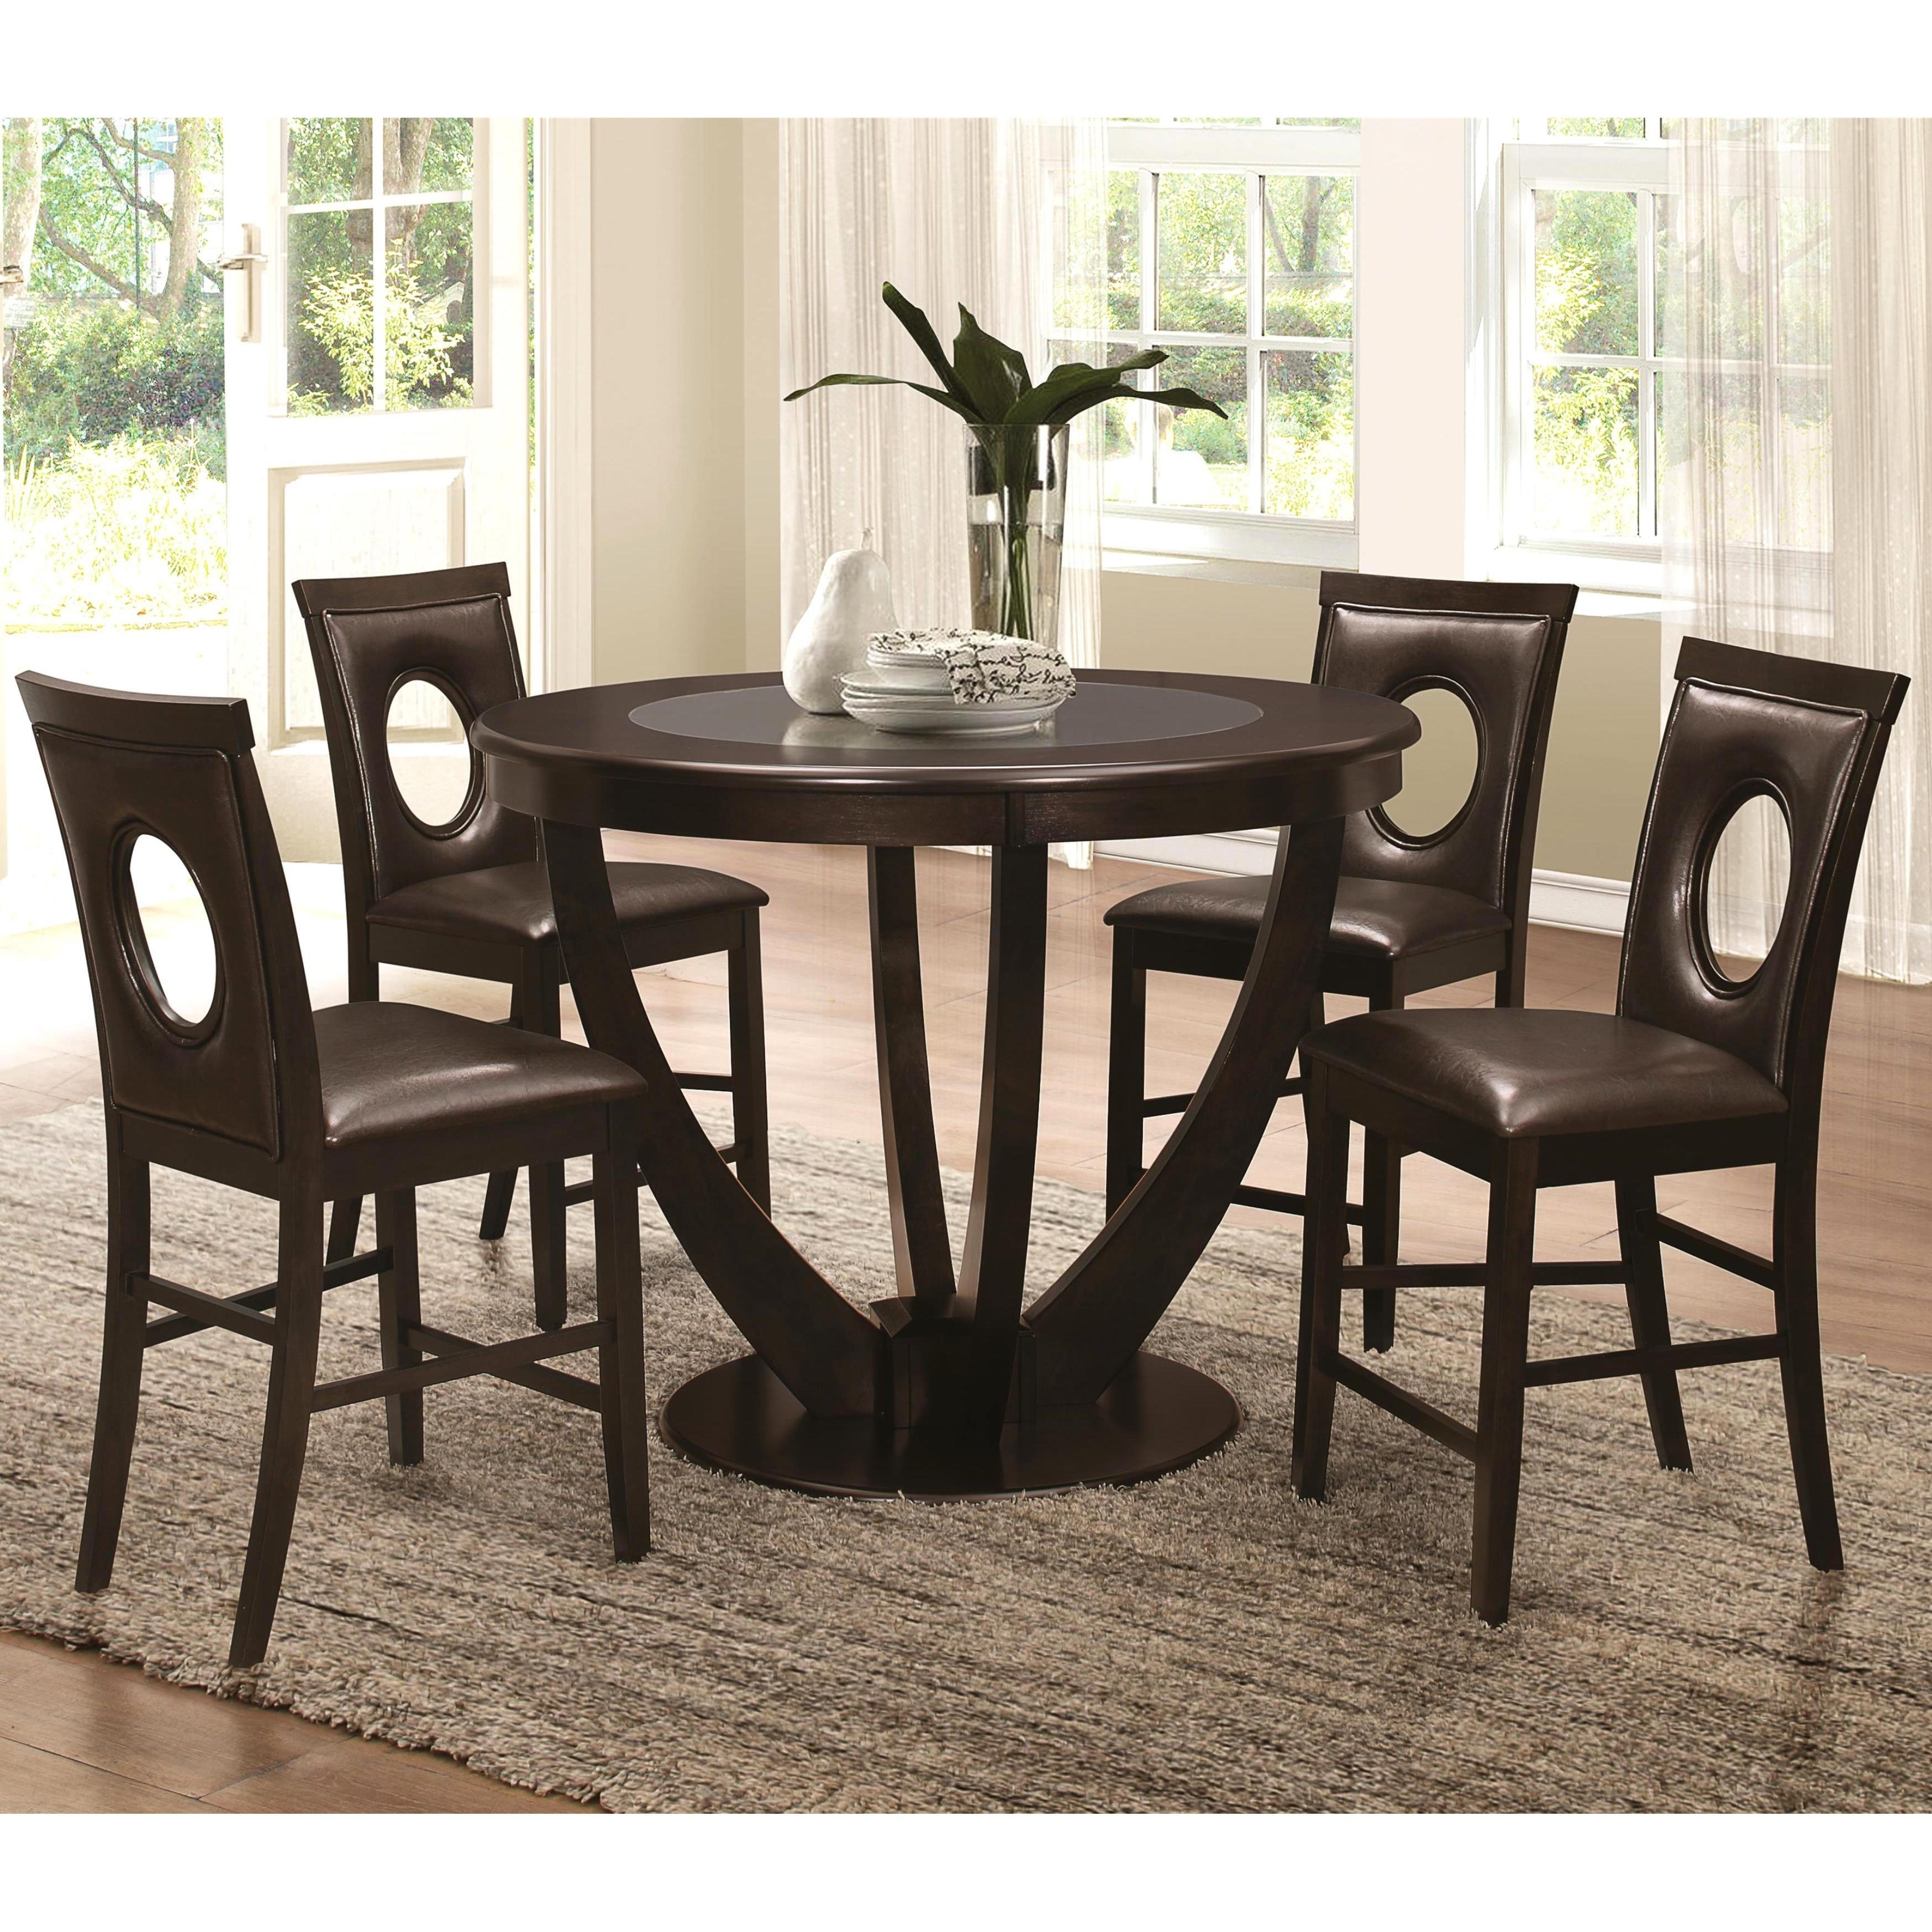 Shop Valencia Casual 5 Piece Counter Height Dininig Set With Black In Current Valencia 5 Piece Counter Sets With Counterstool (View 4 of 20)